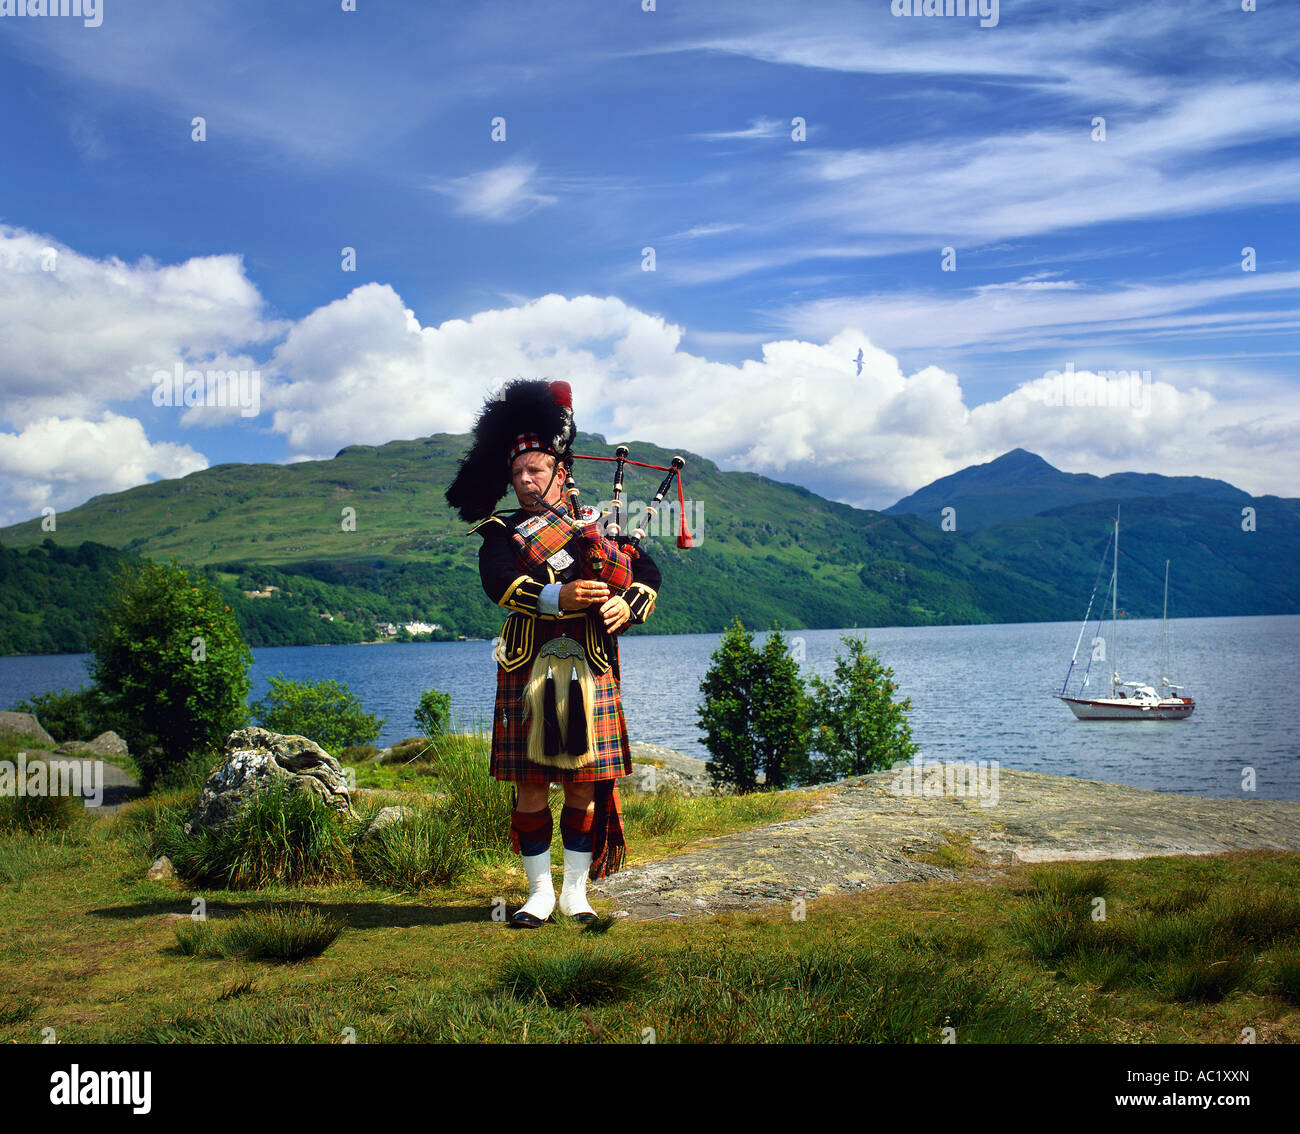 GB - SCOTLAND:  Scottish Piper at Loch Lomond - Stock Image